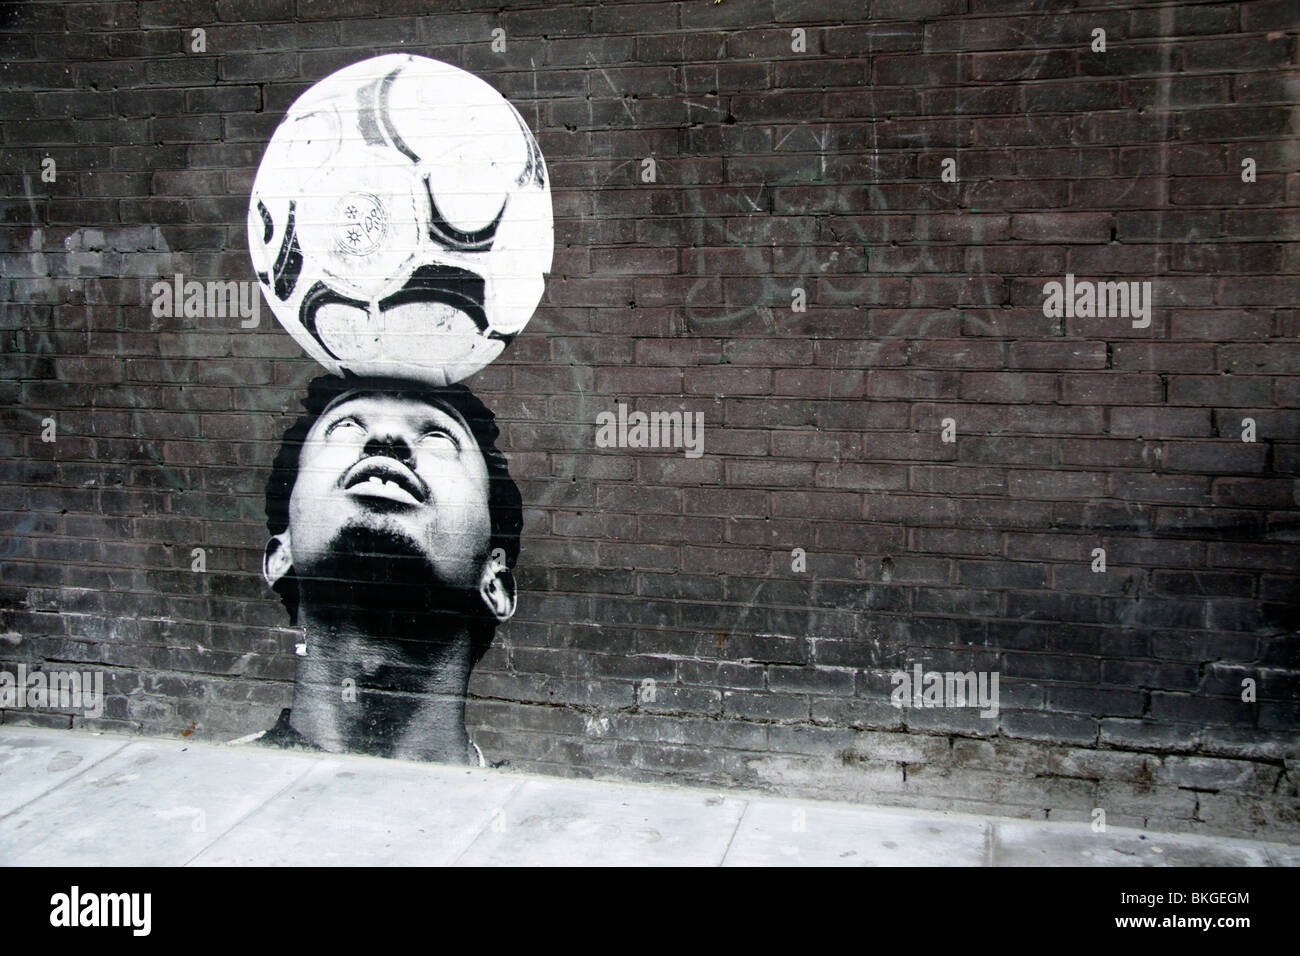 Street art on a wall in east London - Stock Image